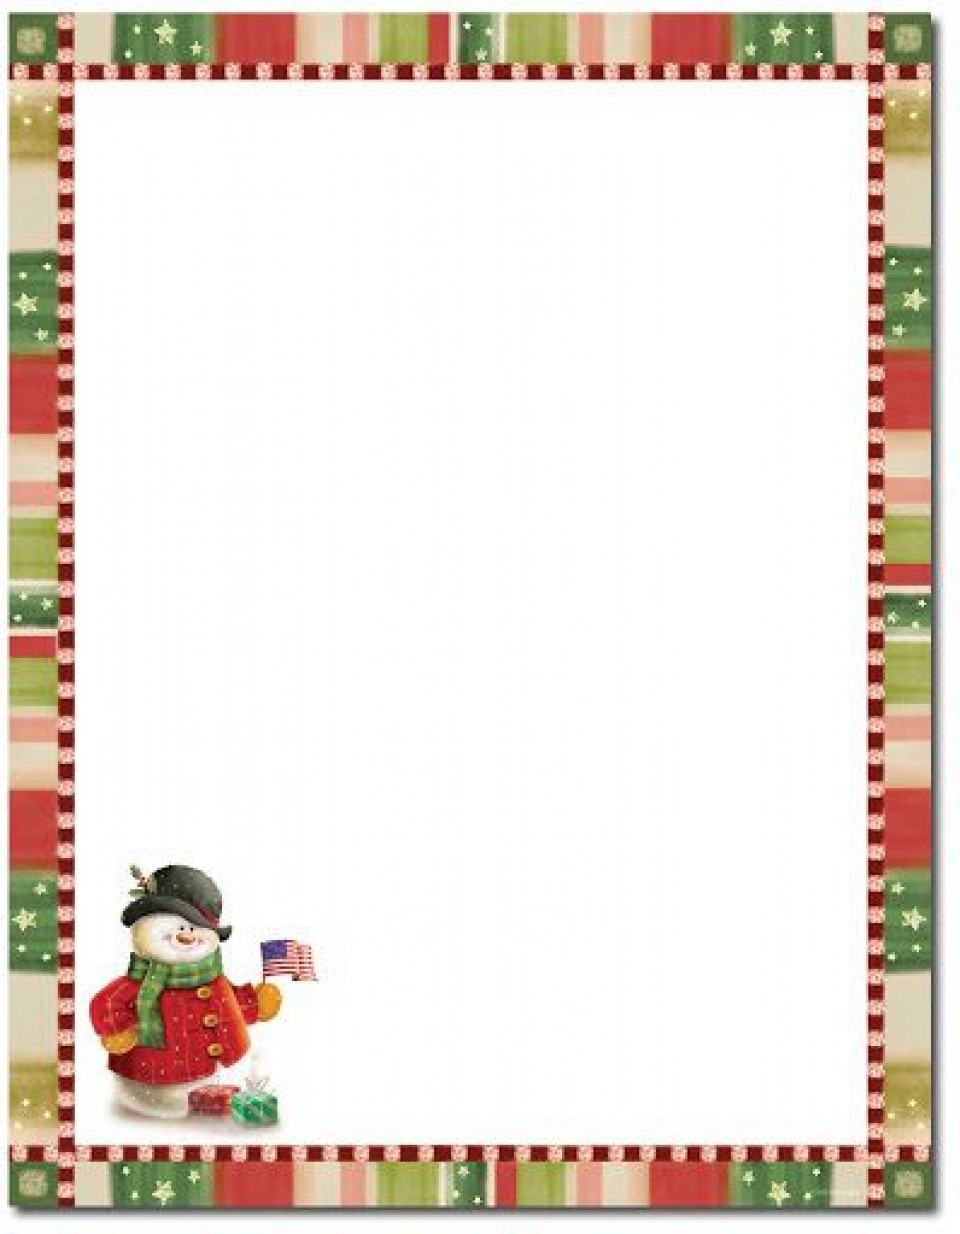 004 Unforgettable Christma Stationery Template Word Free Inspiration  Religiou For Downloadable960